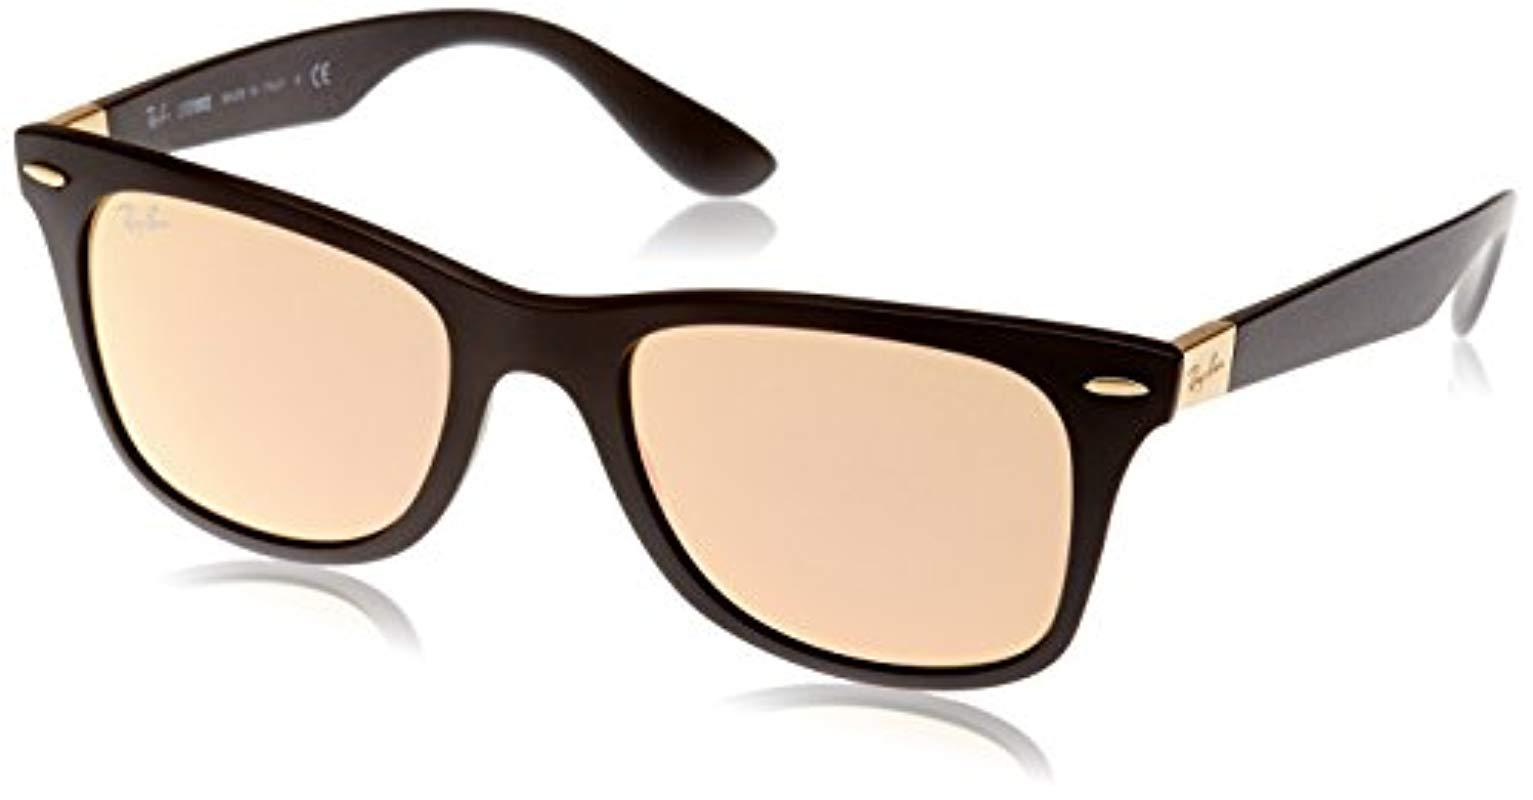 87c6d9486 ... good ray ban liteforce wayfarer sunglasses in matte black copper flash  b972e 5406b